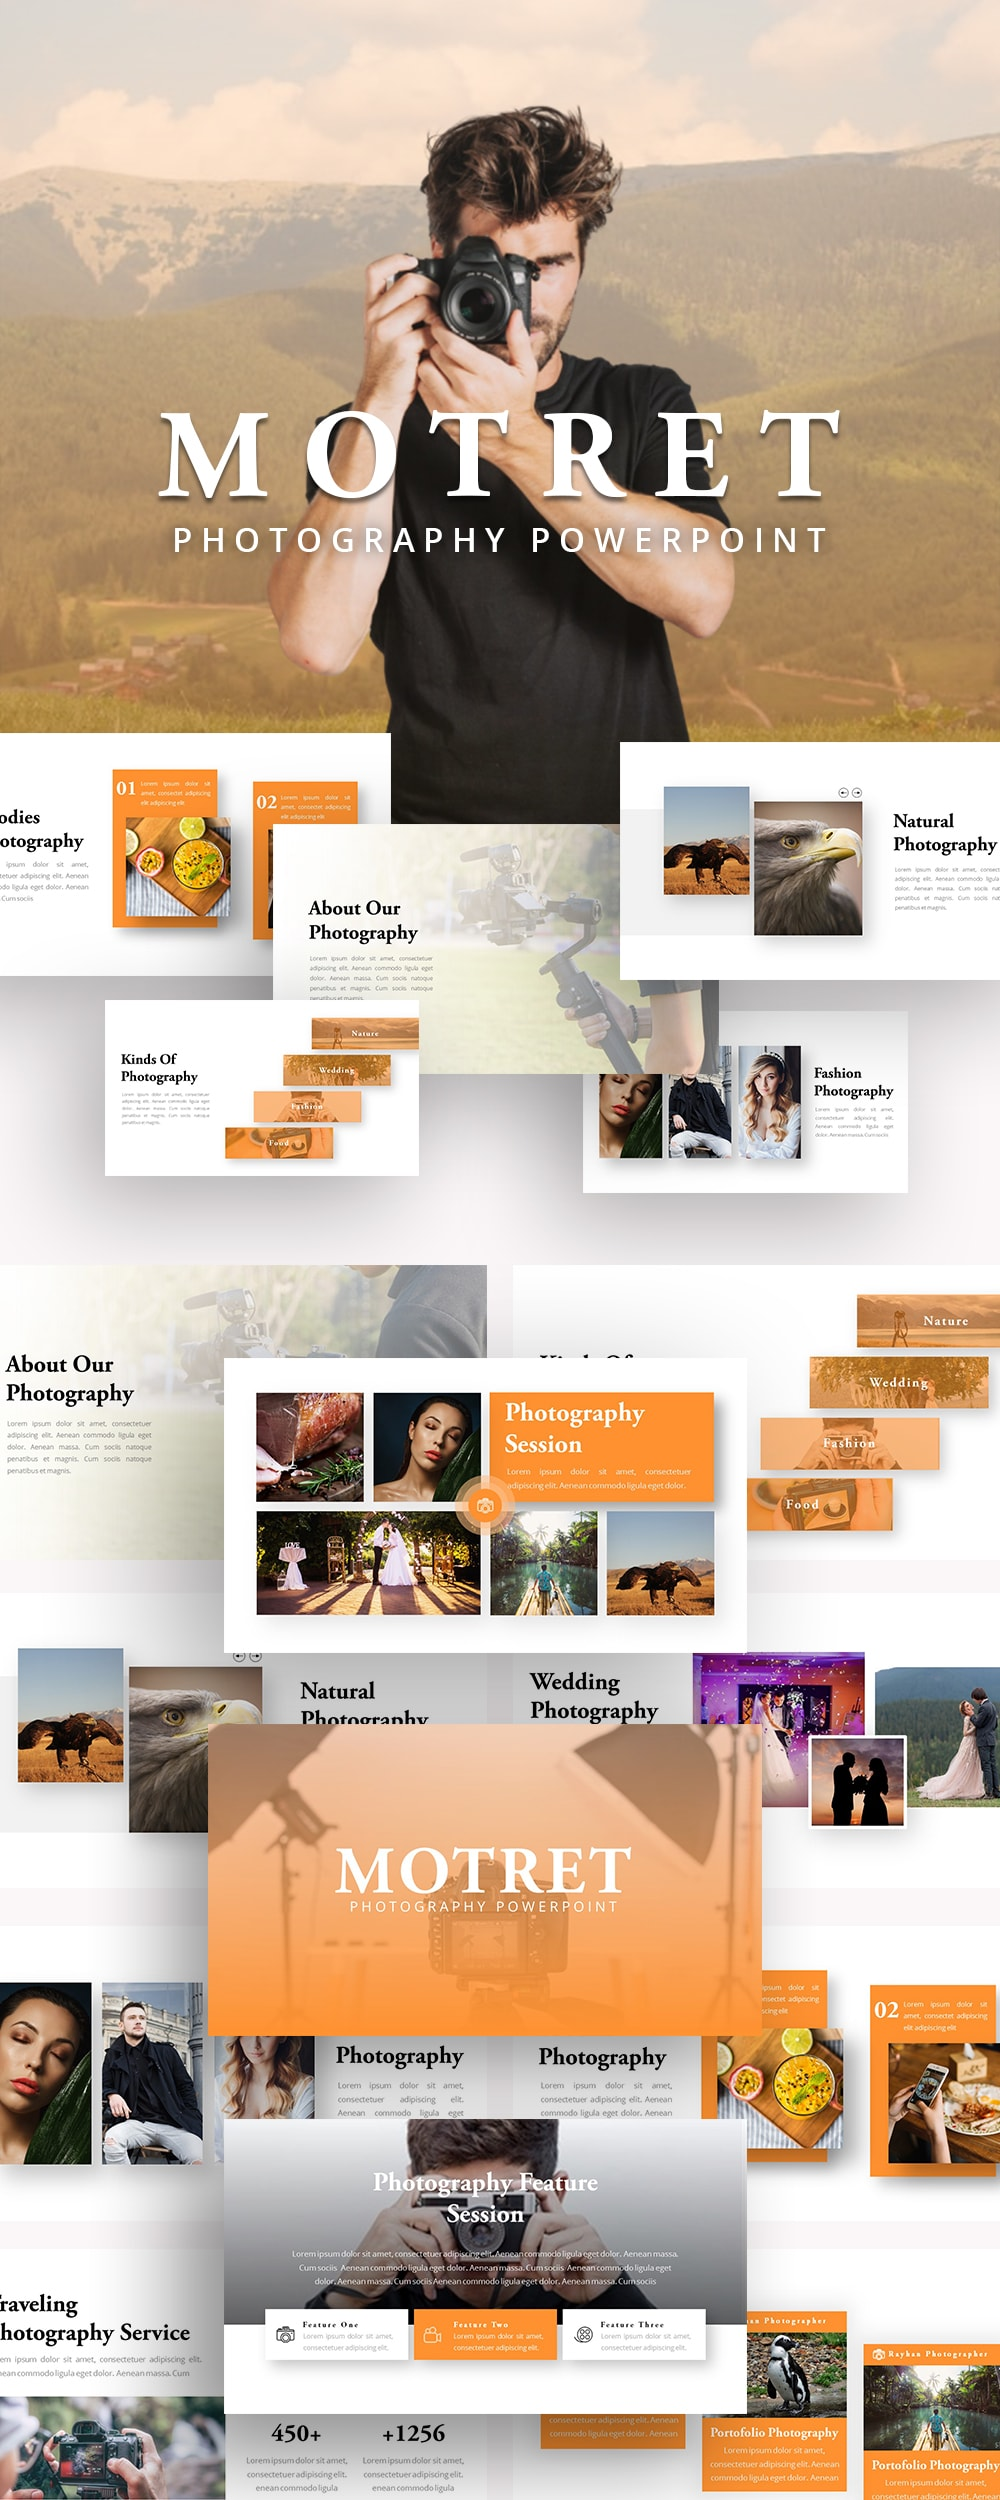 Free Motret Photography PowerPoint